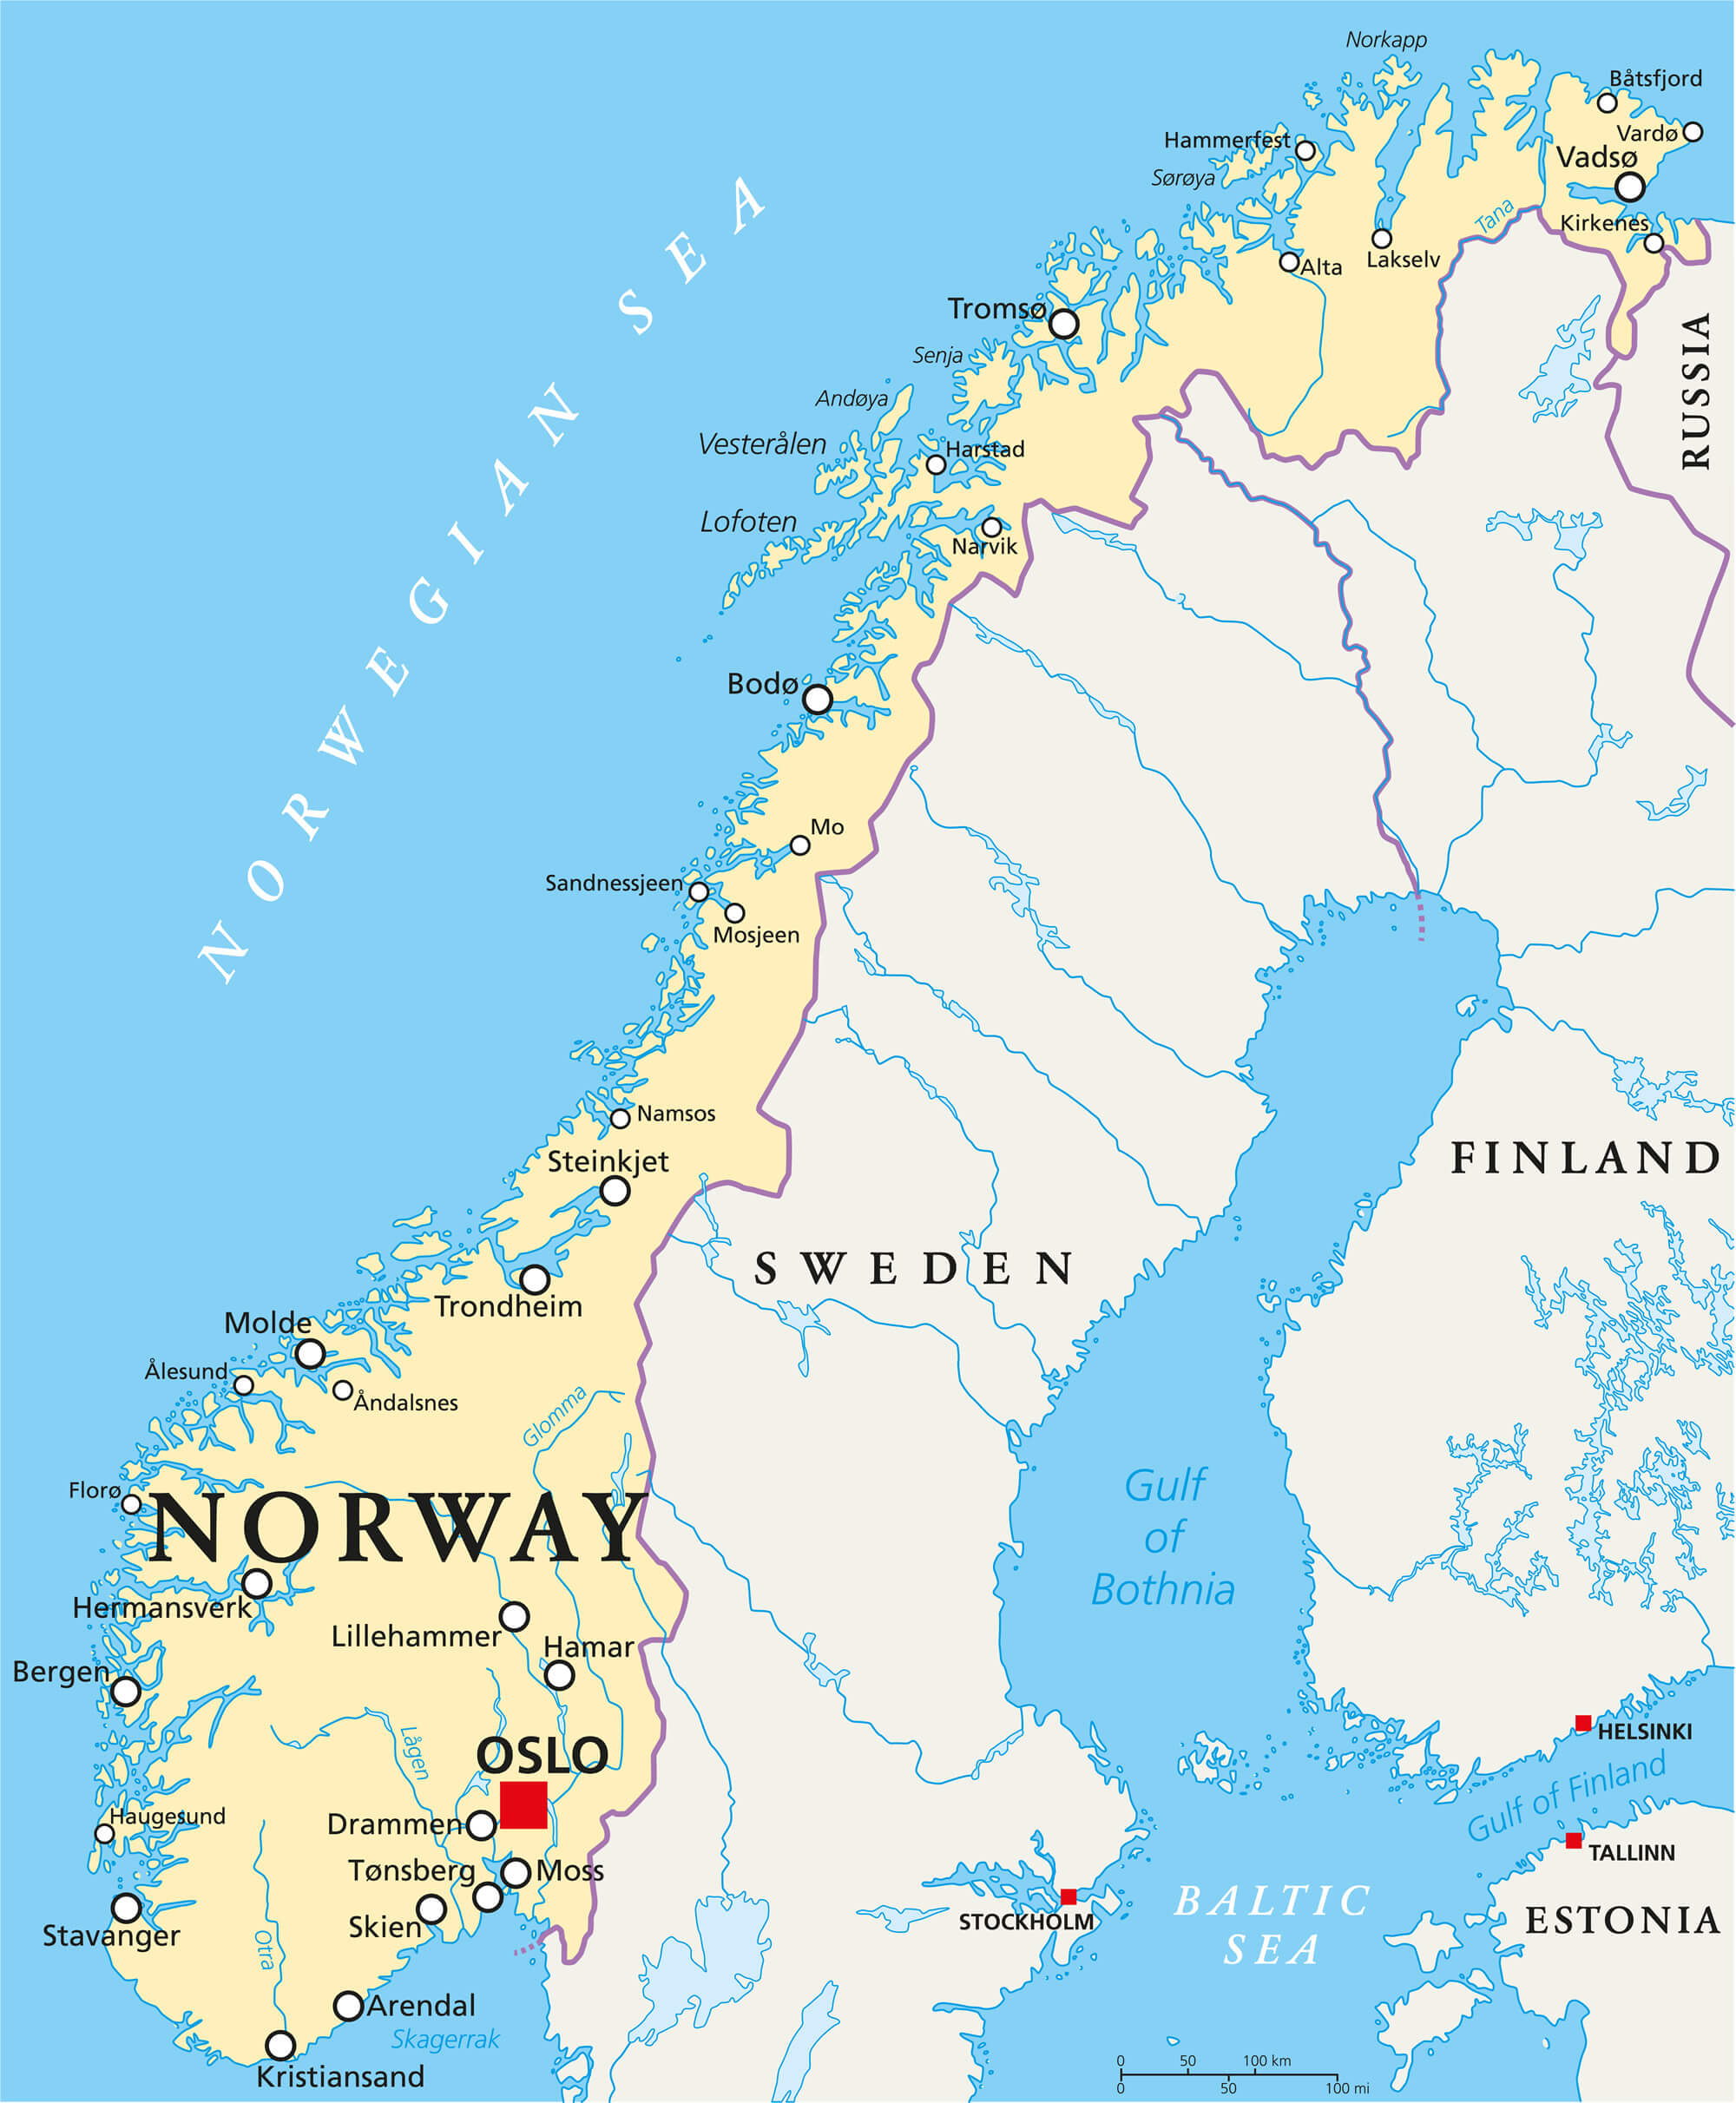 Norway Map - Guide of the World on finland map, brazil map, ireland map, poland map, russia map, iceland map, france map, norwegian map, turkey map, belgium map, united kingdom map, global map, scandinavia map, czech republic map, portugal map, switzerland map, austria map, greece map, europe map, oslo map, scotland map, uk map, north sea map, germany map, spain map, britain map, italy map, denmark map, sweden map, england map, hungary map, cyprus map,